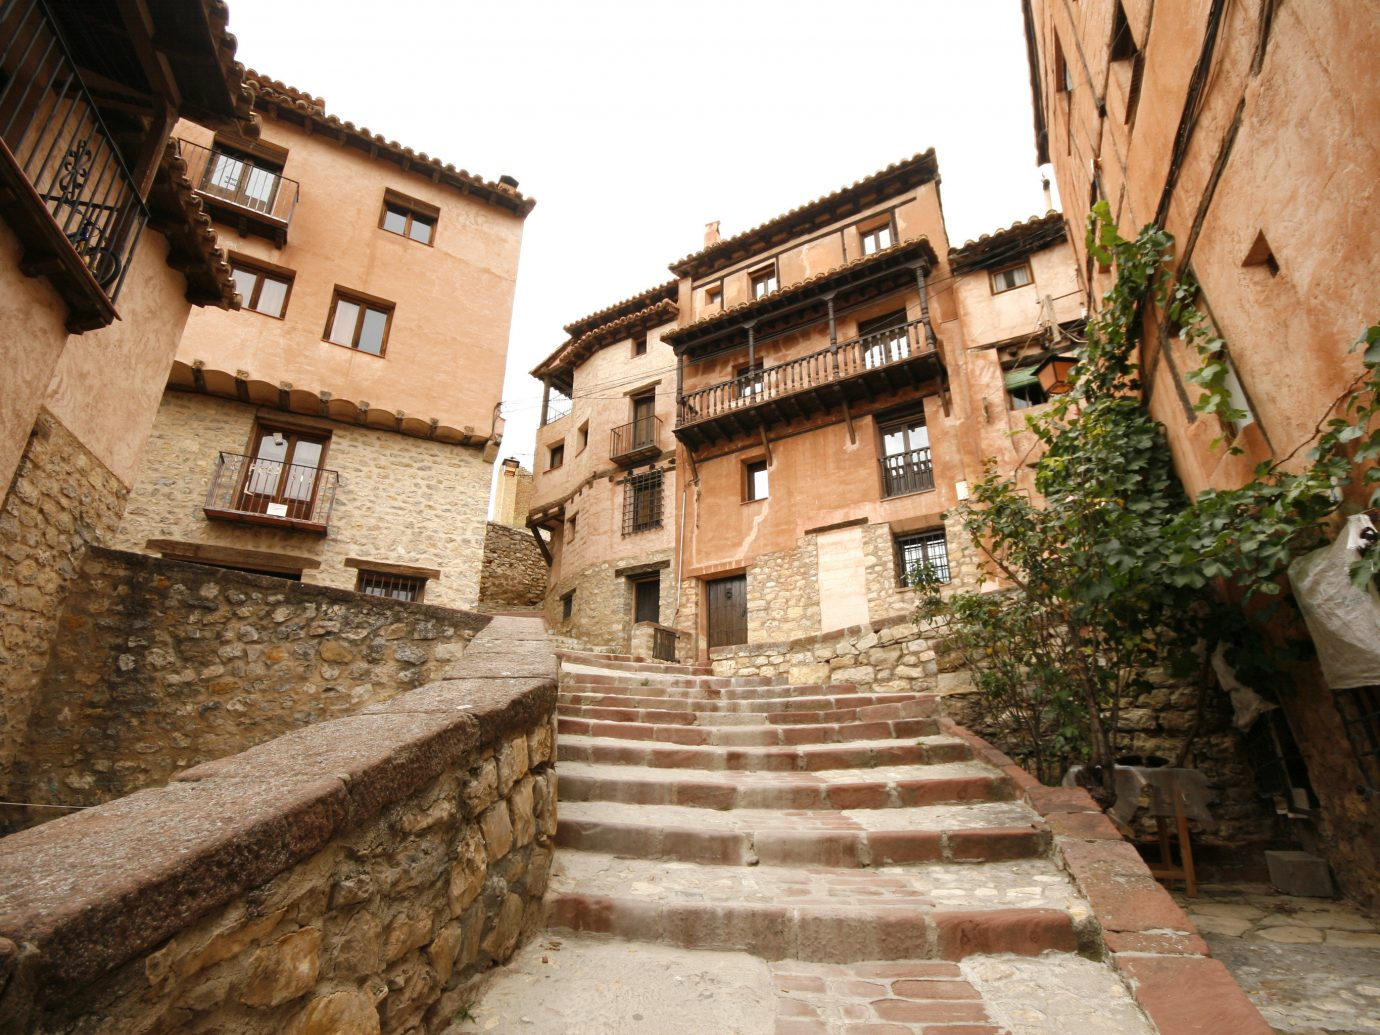 europe Spain Trip Ideas Town neighbourhood alley street historic site history Village City building facade window medieval architecture road